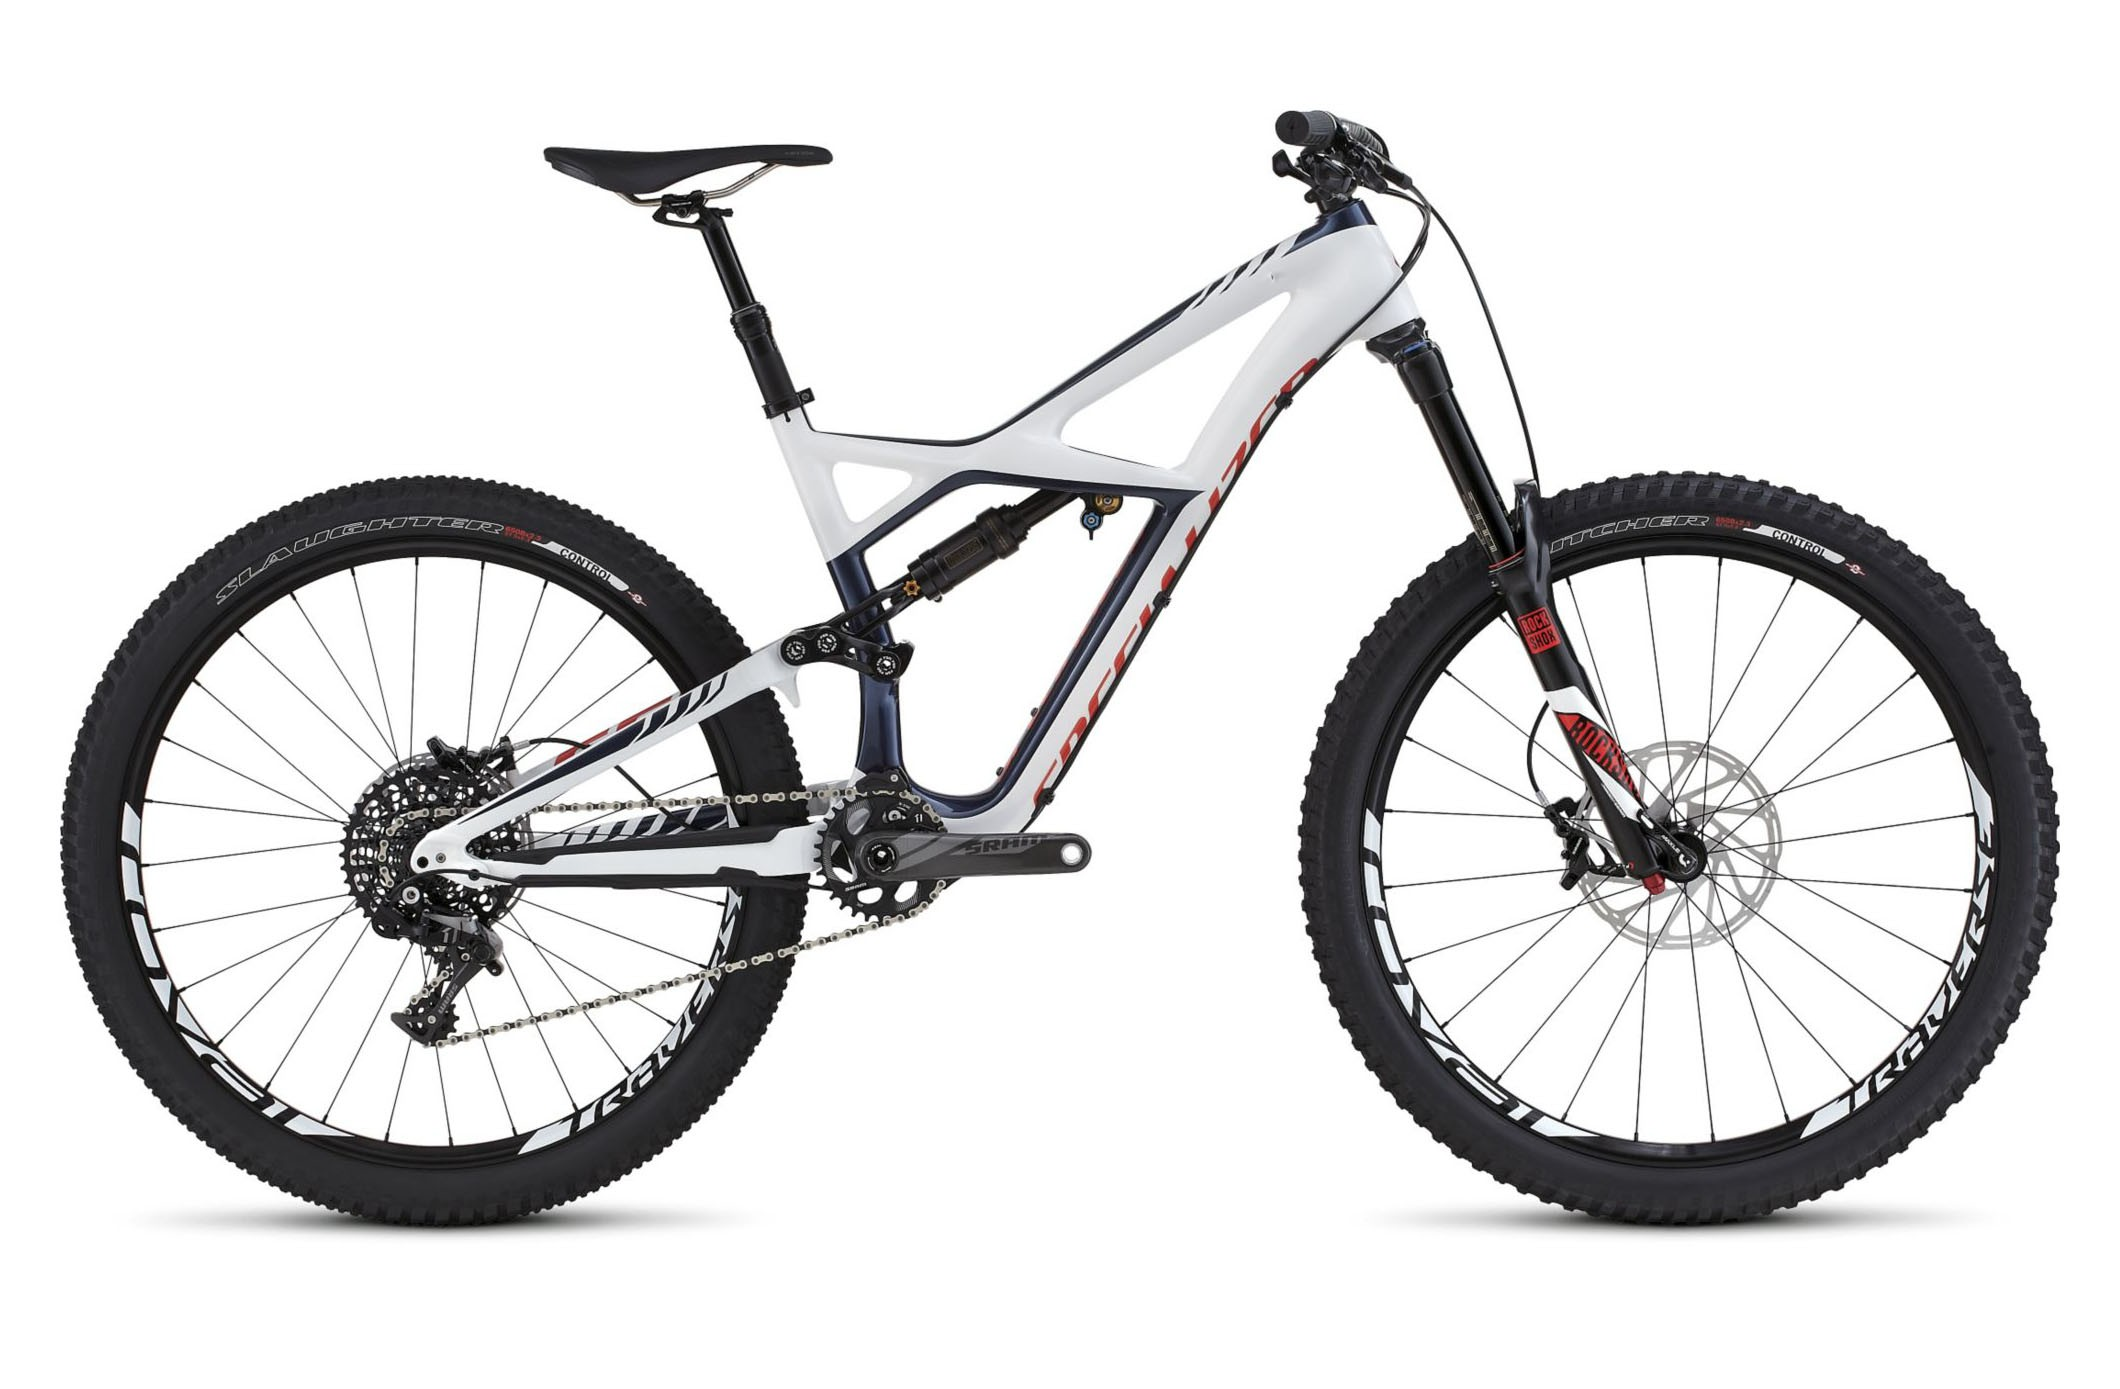 Горный велосипед Specialized Enduro Expert Carbon 650b (2016)